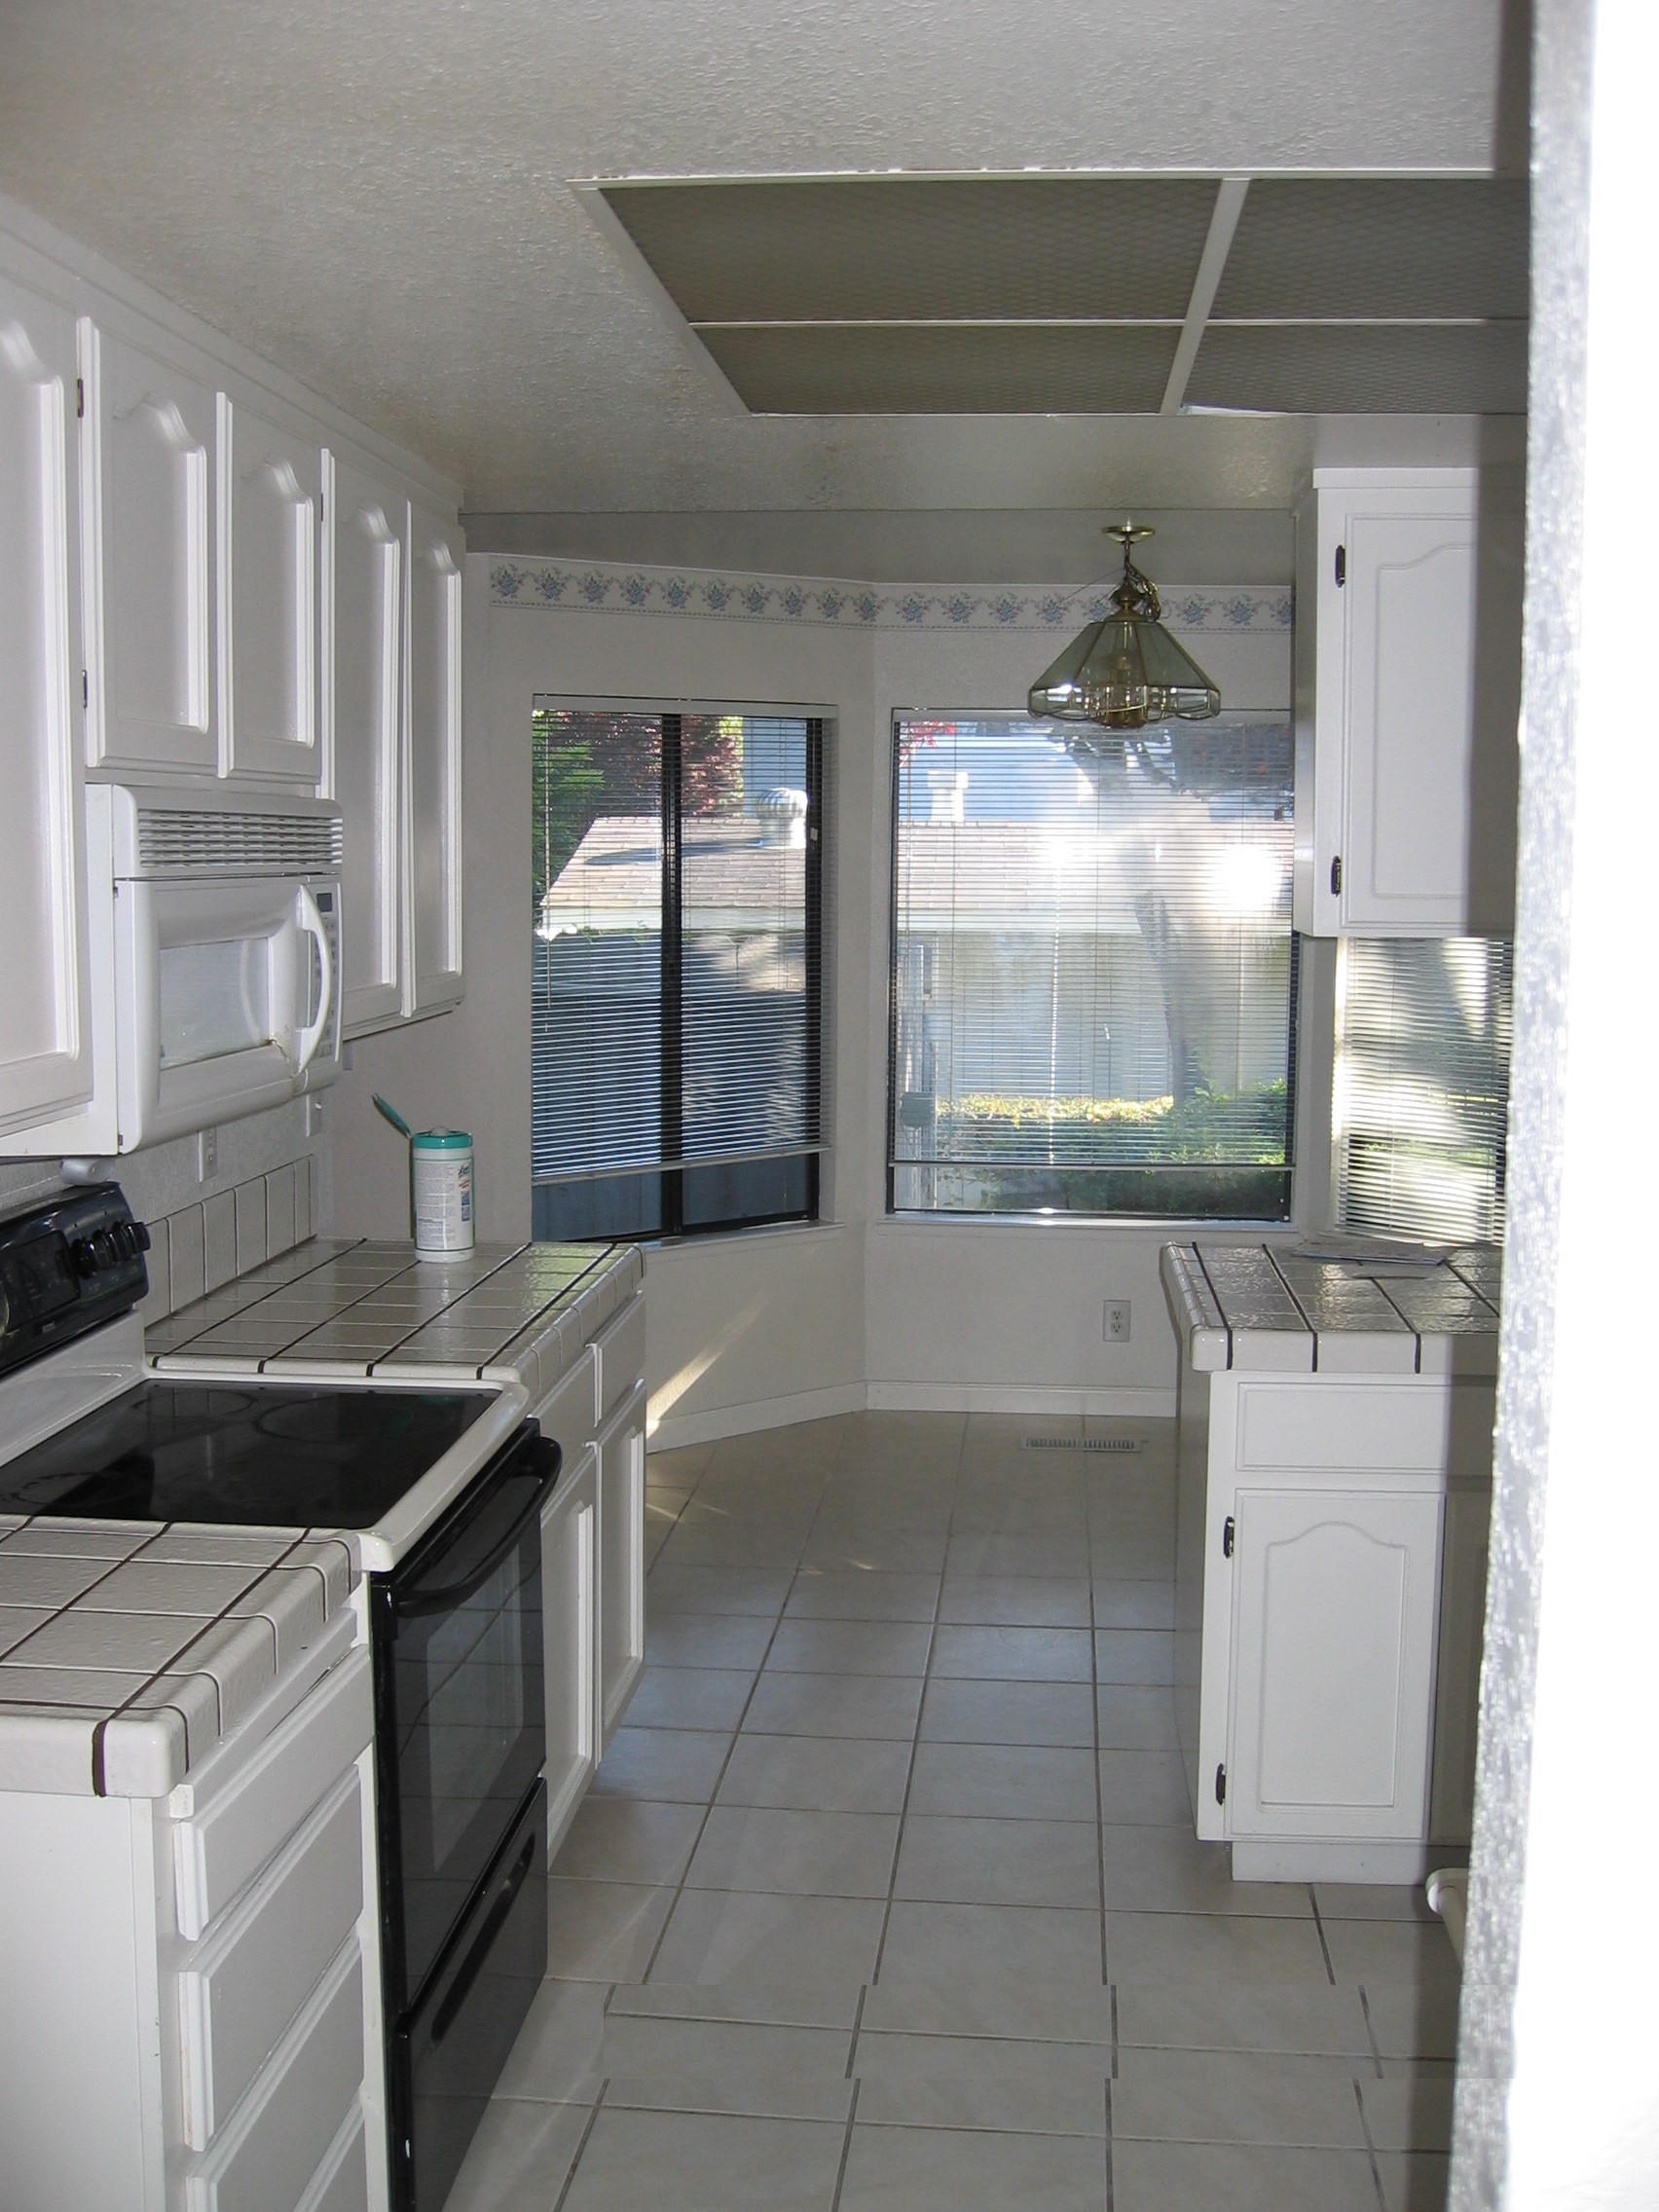 Rooms For Rent Fremont Ca Apartments House Commercial